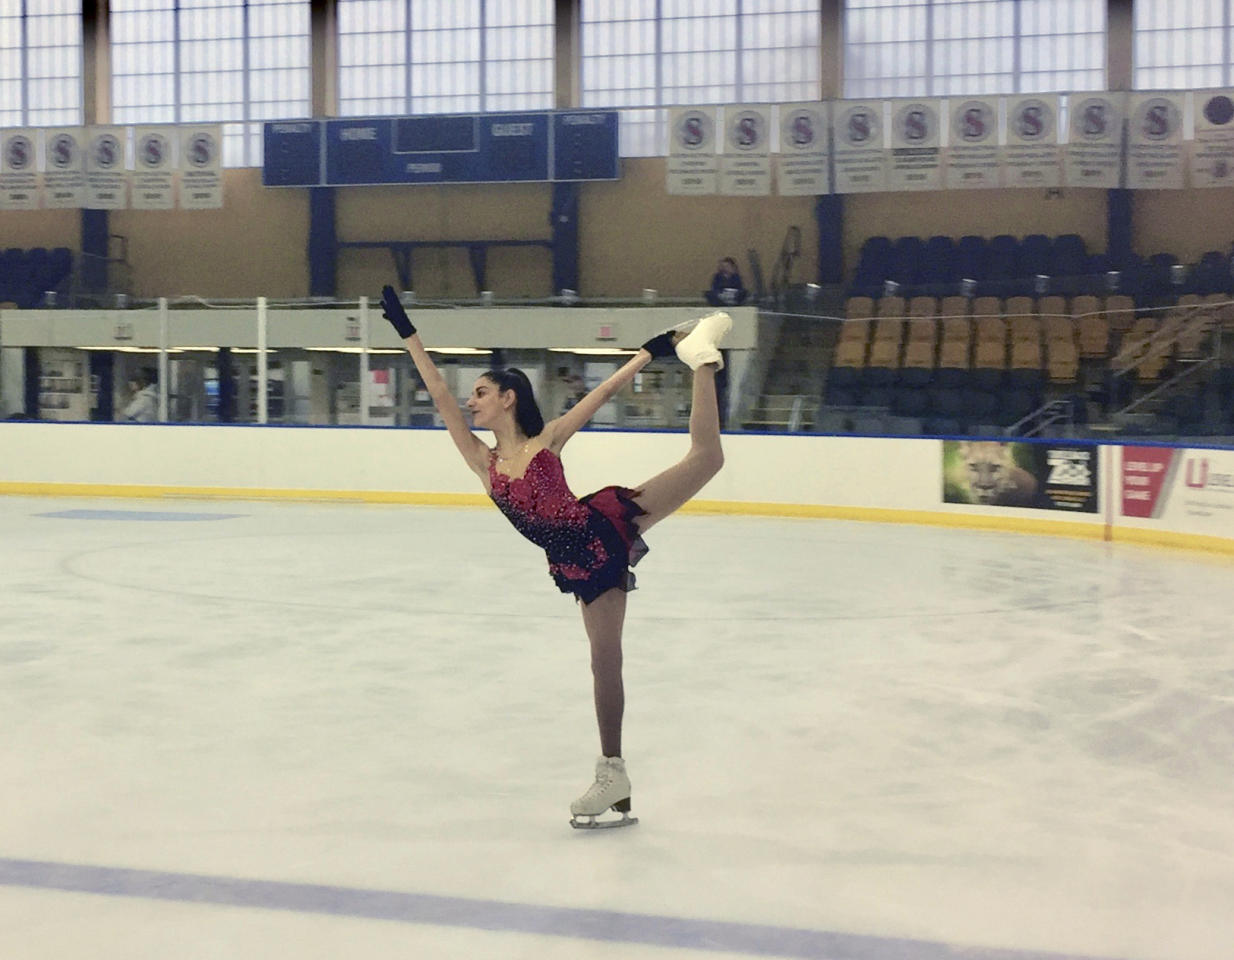 """In this June 3, 2018, photo provided by Championship Figure Skating Camp, skater Isabella Melendez practices a spiral at Essex County Codey Arena in West Orange, N.J. Rosie Tovi has a better idea. The figure skating coach believes _ and she has many supporters throughout the ice world _ an emphasis on """"happy and healthy"""" should take precedence over turning the sport into gymnastics in a rink. The longtime coach and choreographer calls it a holistic approach. """"Holistic is a perfect word, because it is the whole,"""" says Tovi, who will be launching her Championship Figure Skating Camp at the Essex County Codey Arena in West Orange on June 25. (Rosie Tovi/Championship Figure Skating Camp via AP)"""